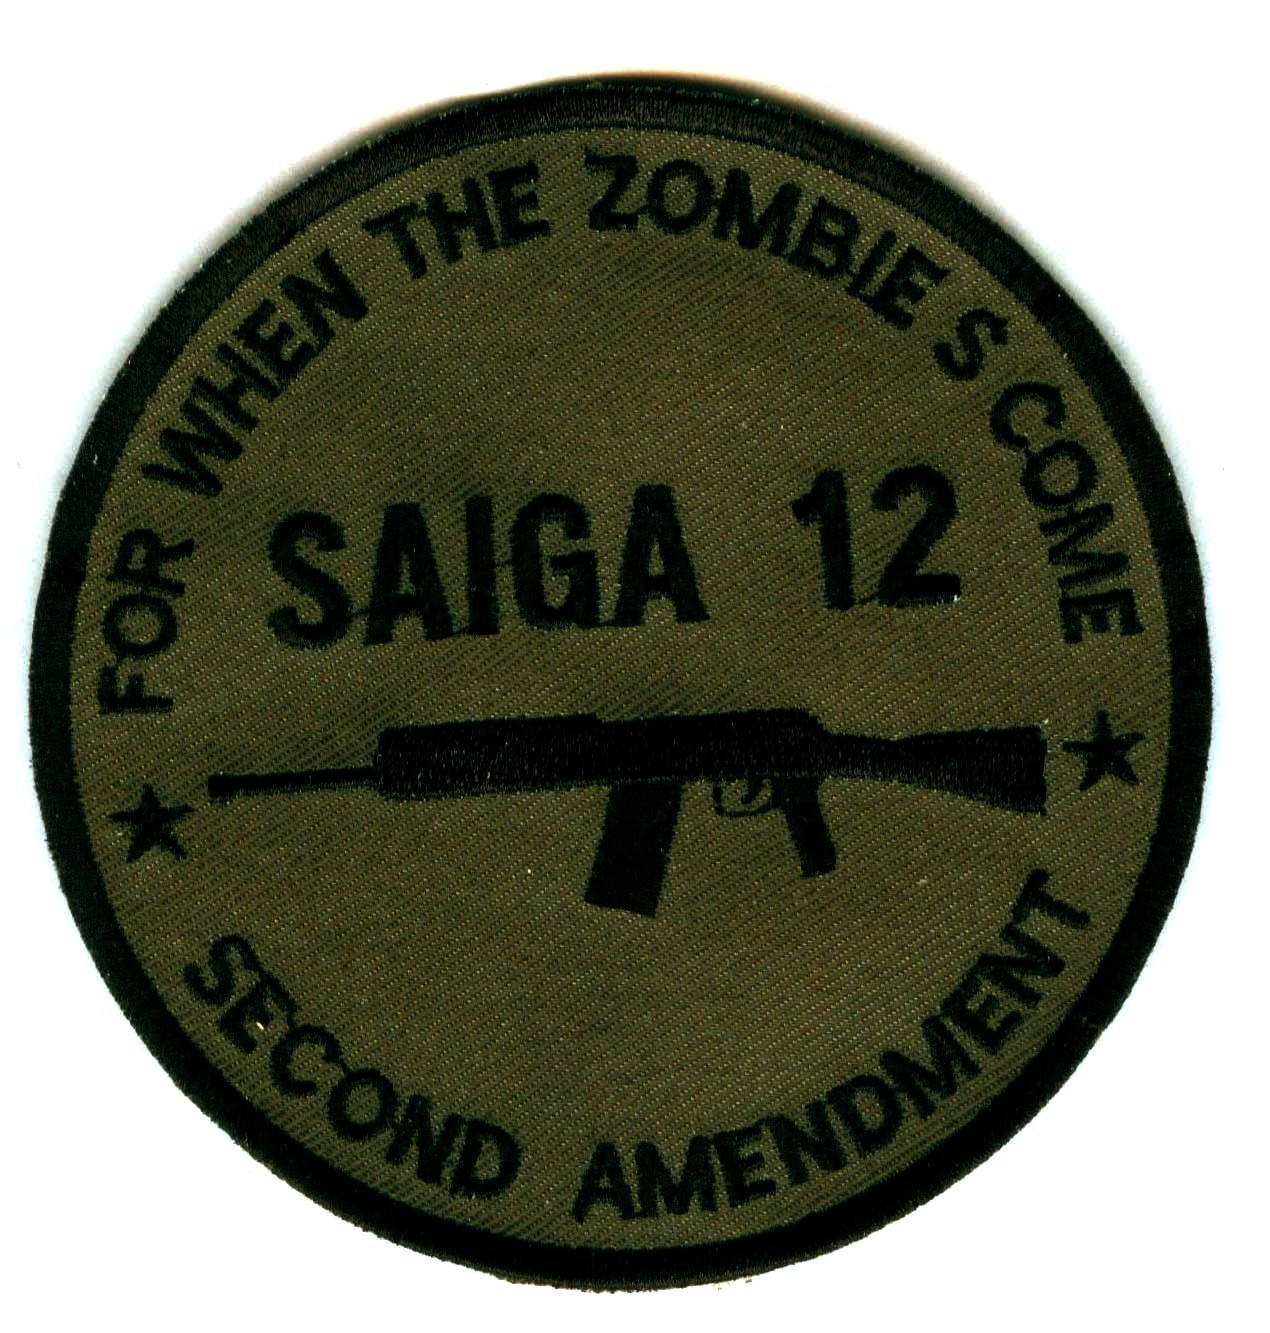 SAIGA 12 For When The Zombies Come